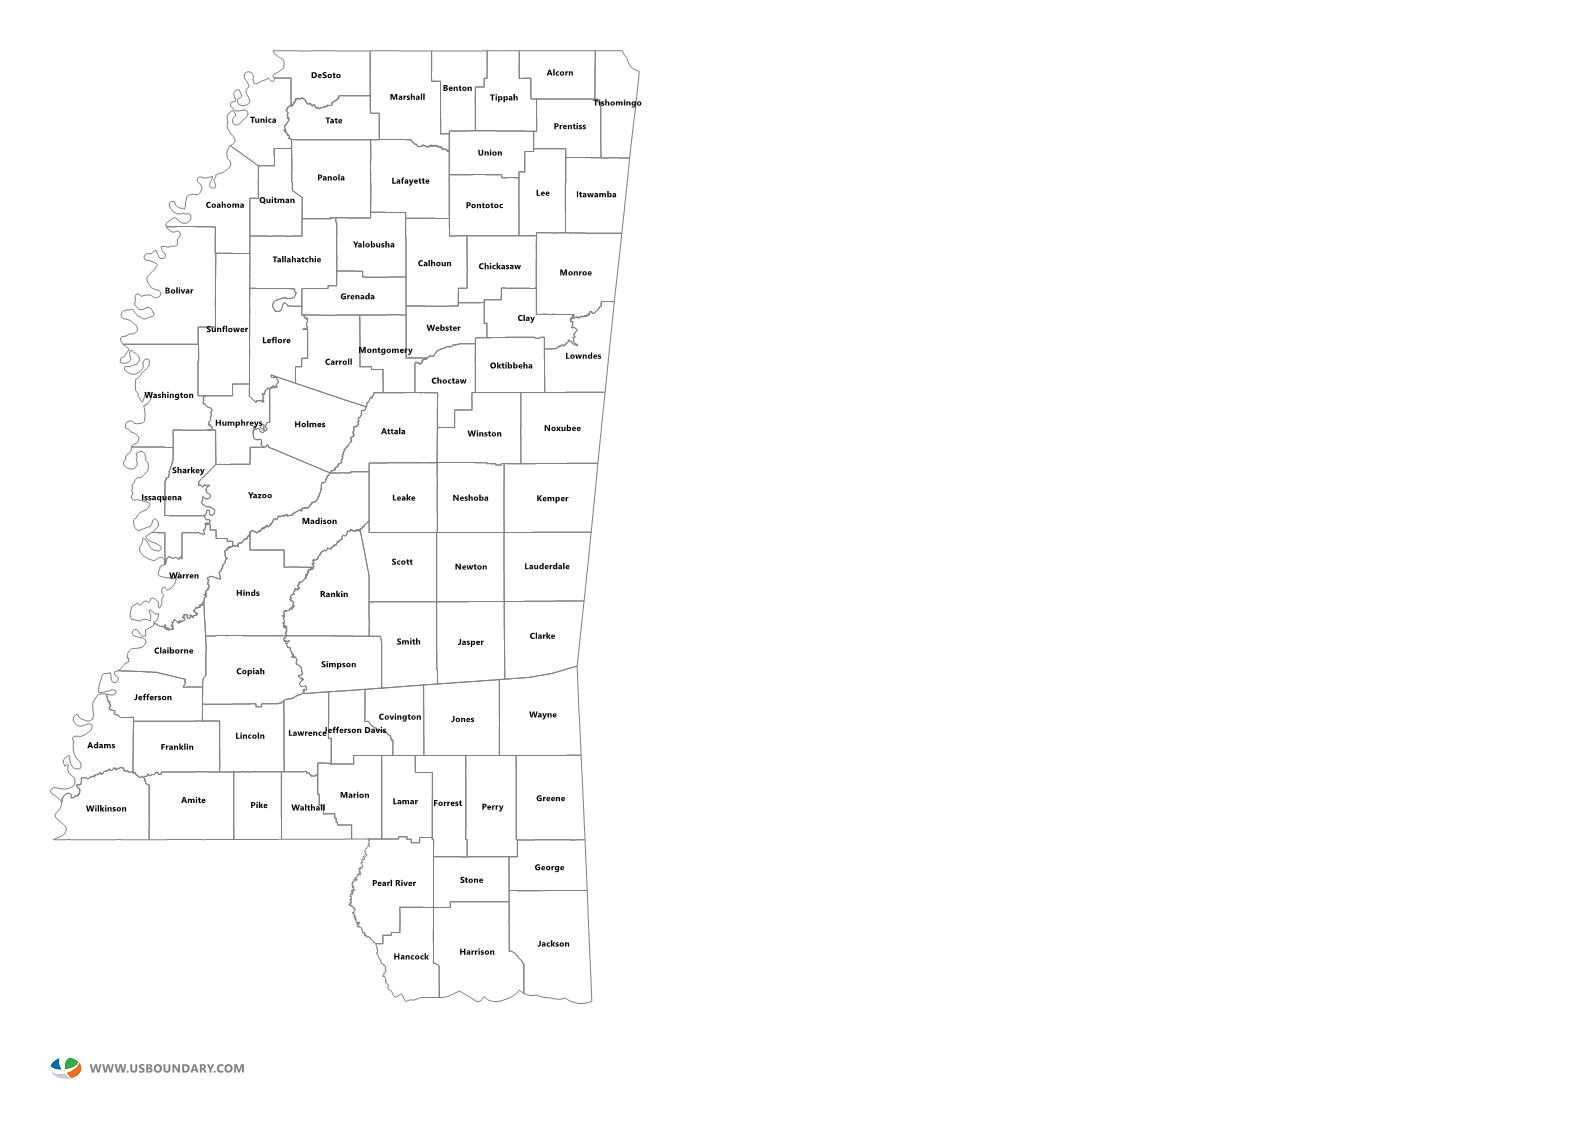 State counties maps download. Mississippi outline png banner black and white download